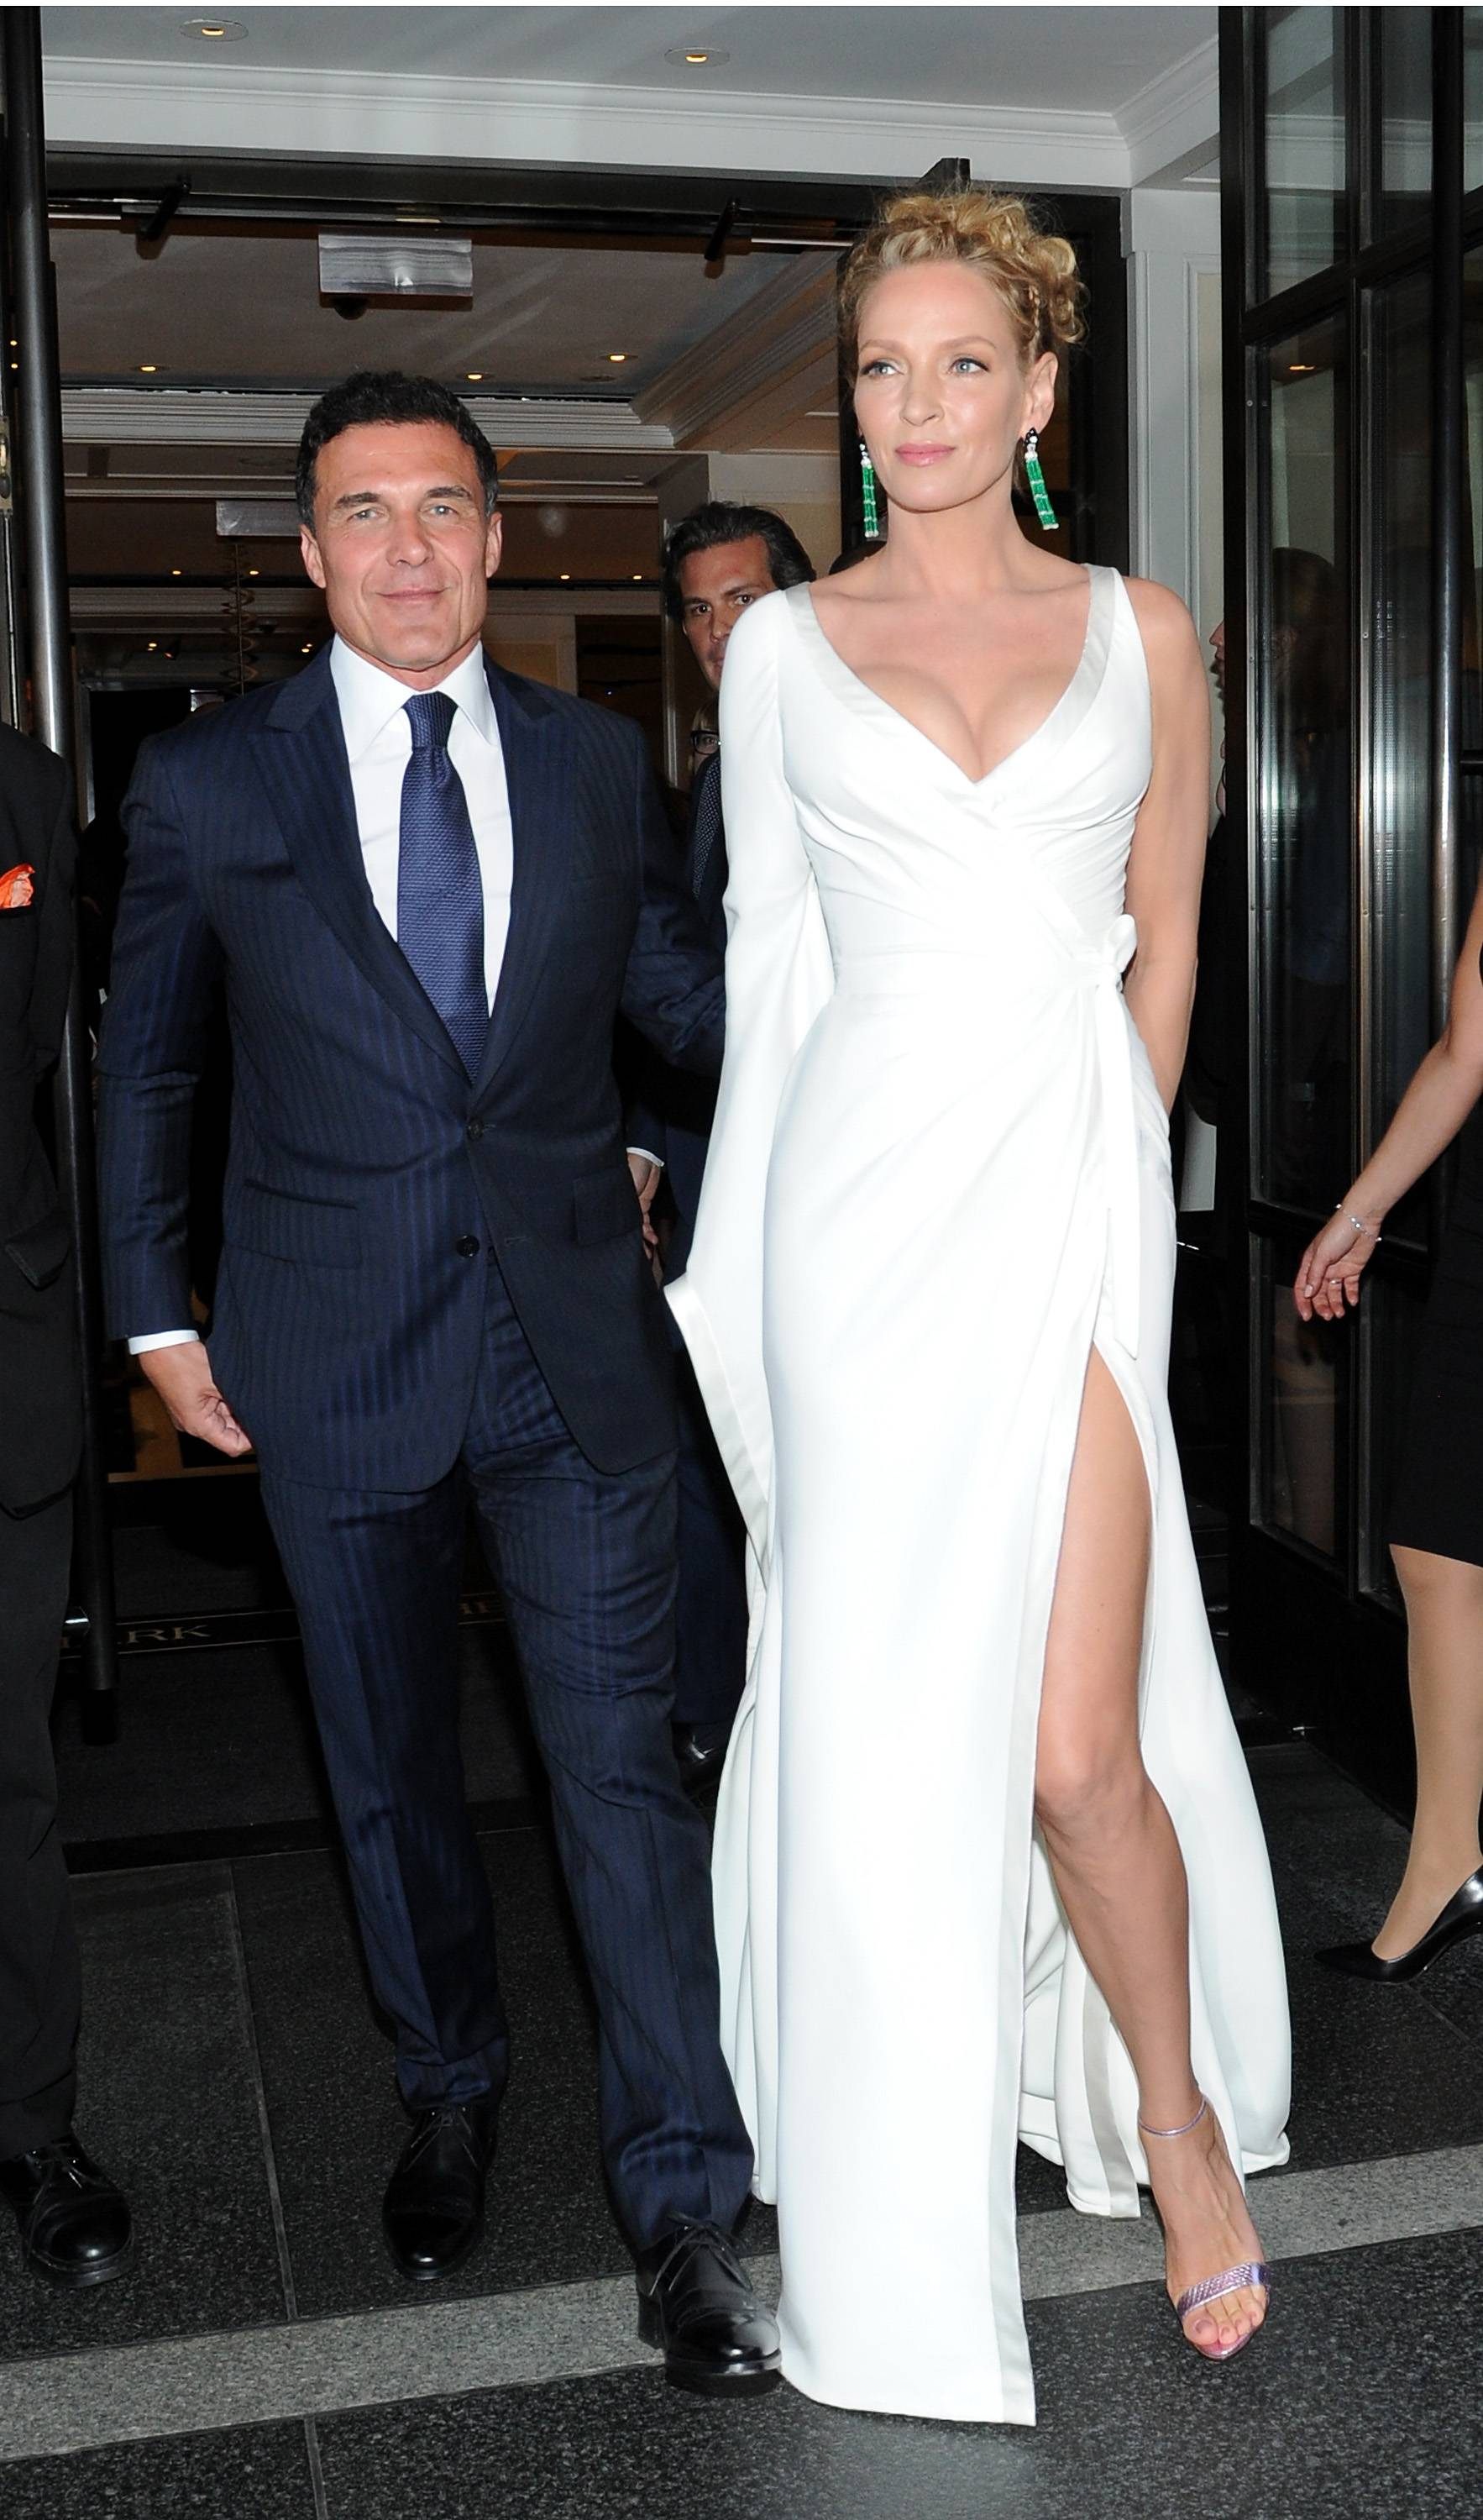 NEW YORK, NY - MAY 04:  Andre Balazs and Uma Thurman depart The Mark Hotel for the Met Gala at the Metropolitan Museum of Art on May 4, 2015 in New York City.  (Photo by Andrew Toth/Getty Images for The Mark Hotel)